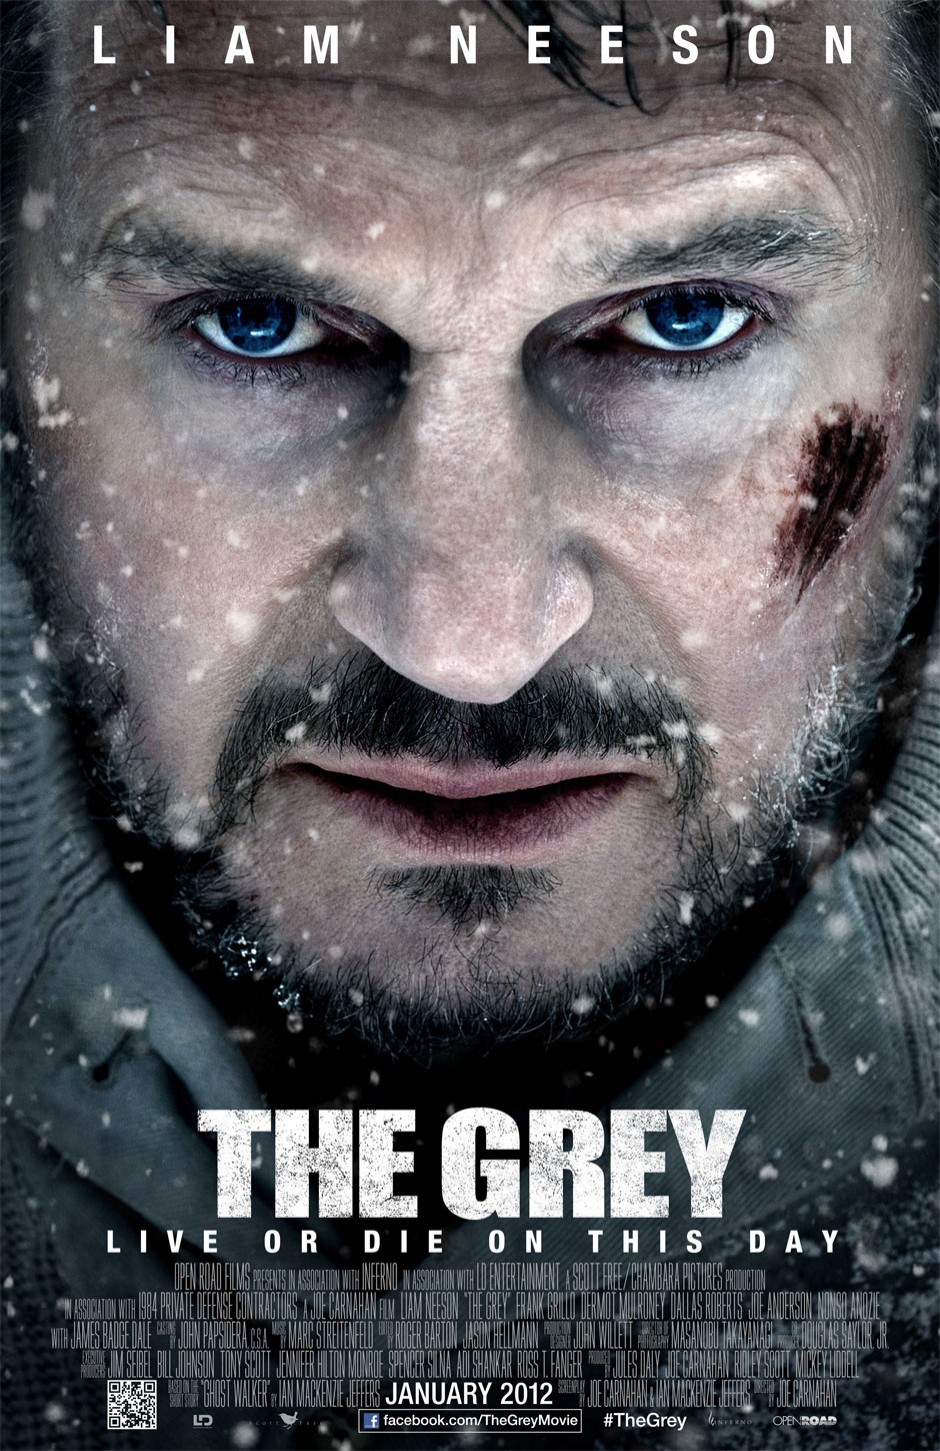 The-Grey-2012-Movie-Poster-e1318999208152